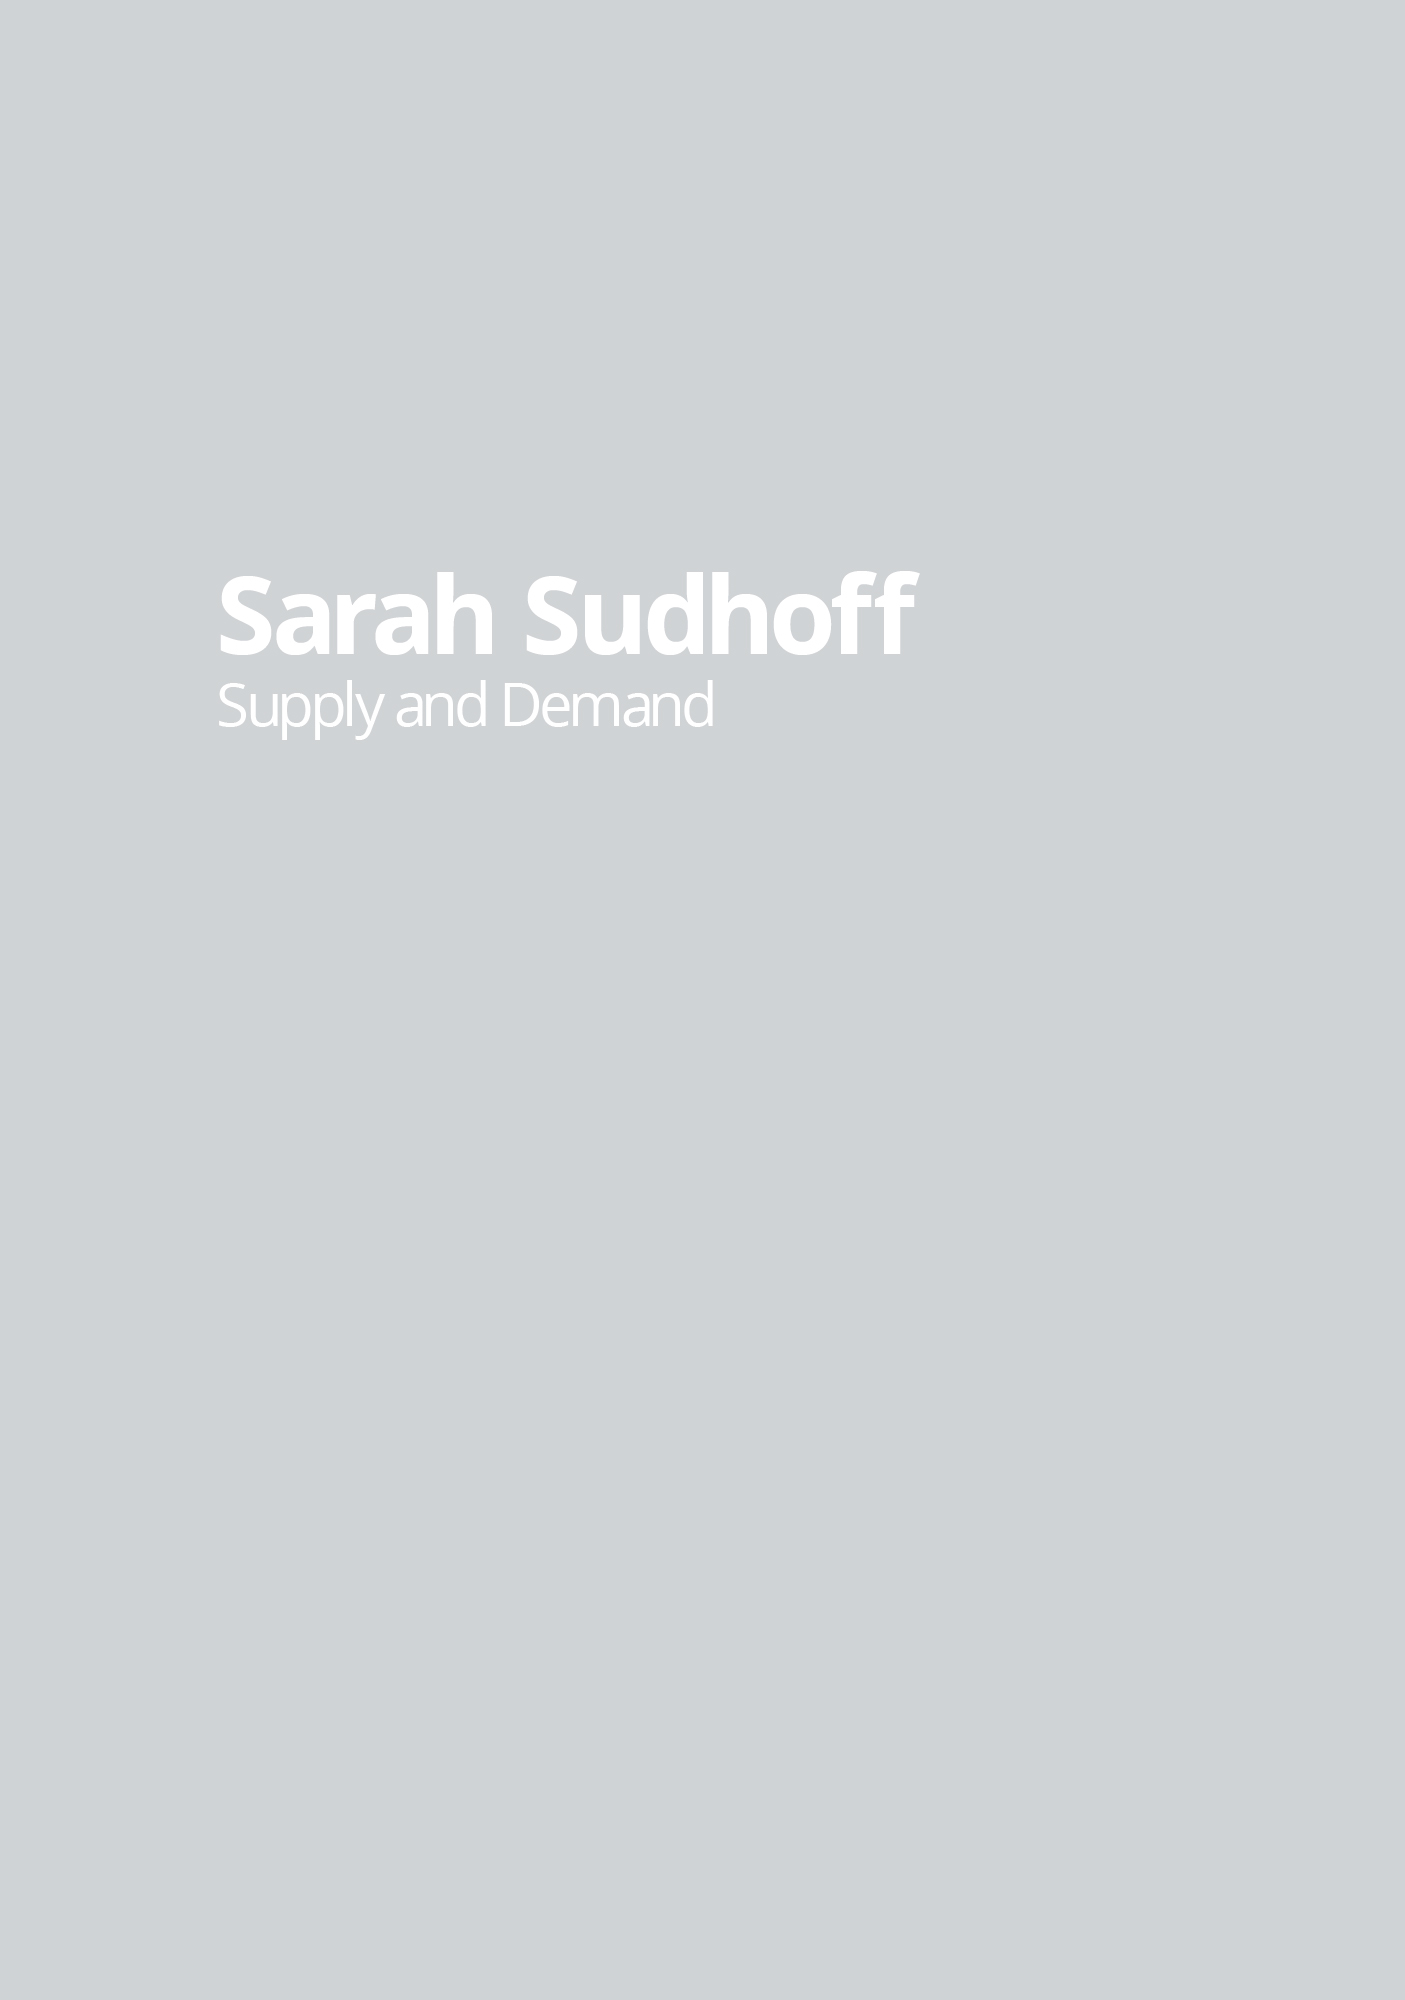 SARAH SUDHOFF  Supply and Demand  2014